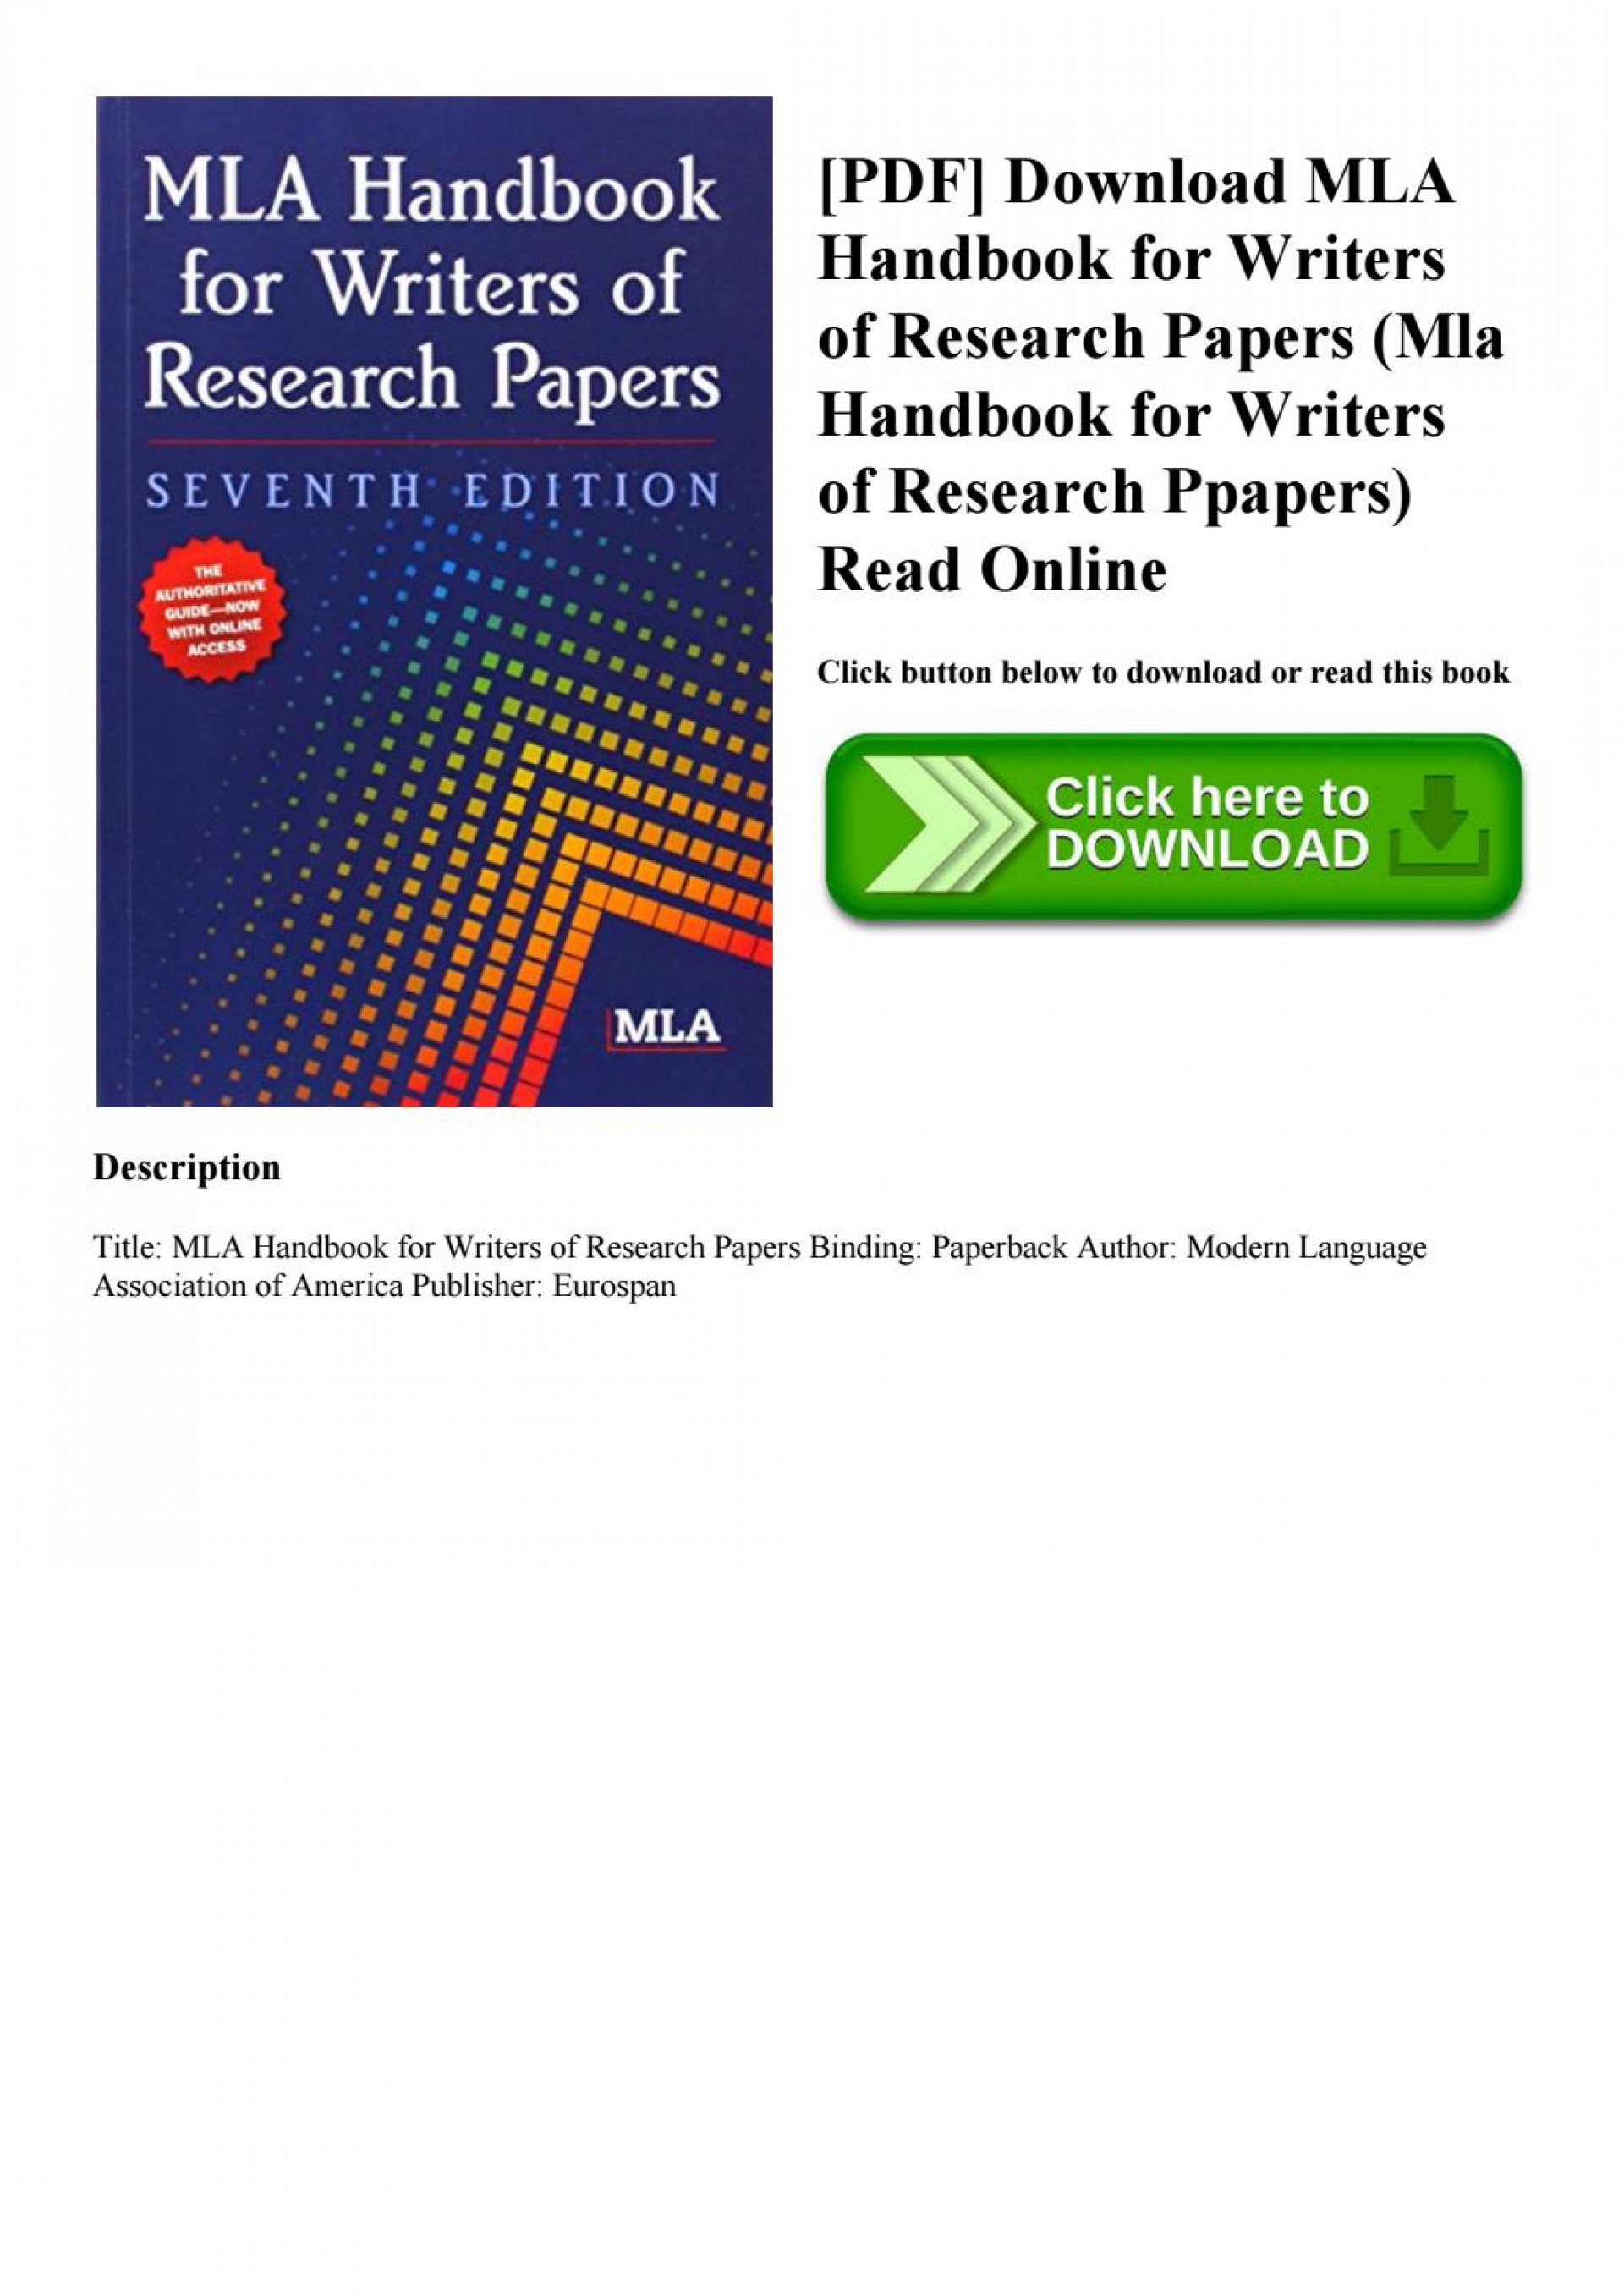 001 Mla Handbook For Writing Research Papers Pdf Paper Page 1 Beautiful Writers Of 7th Edition Free 6th 2009 1920